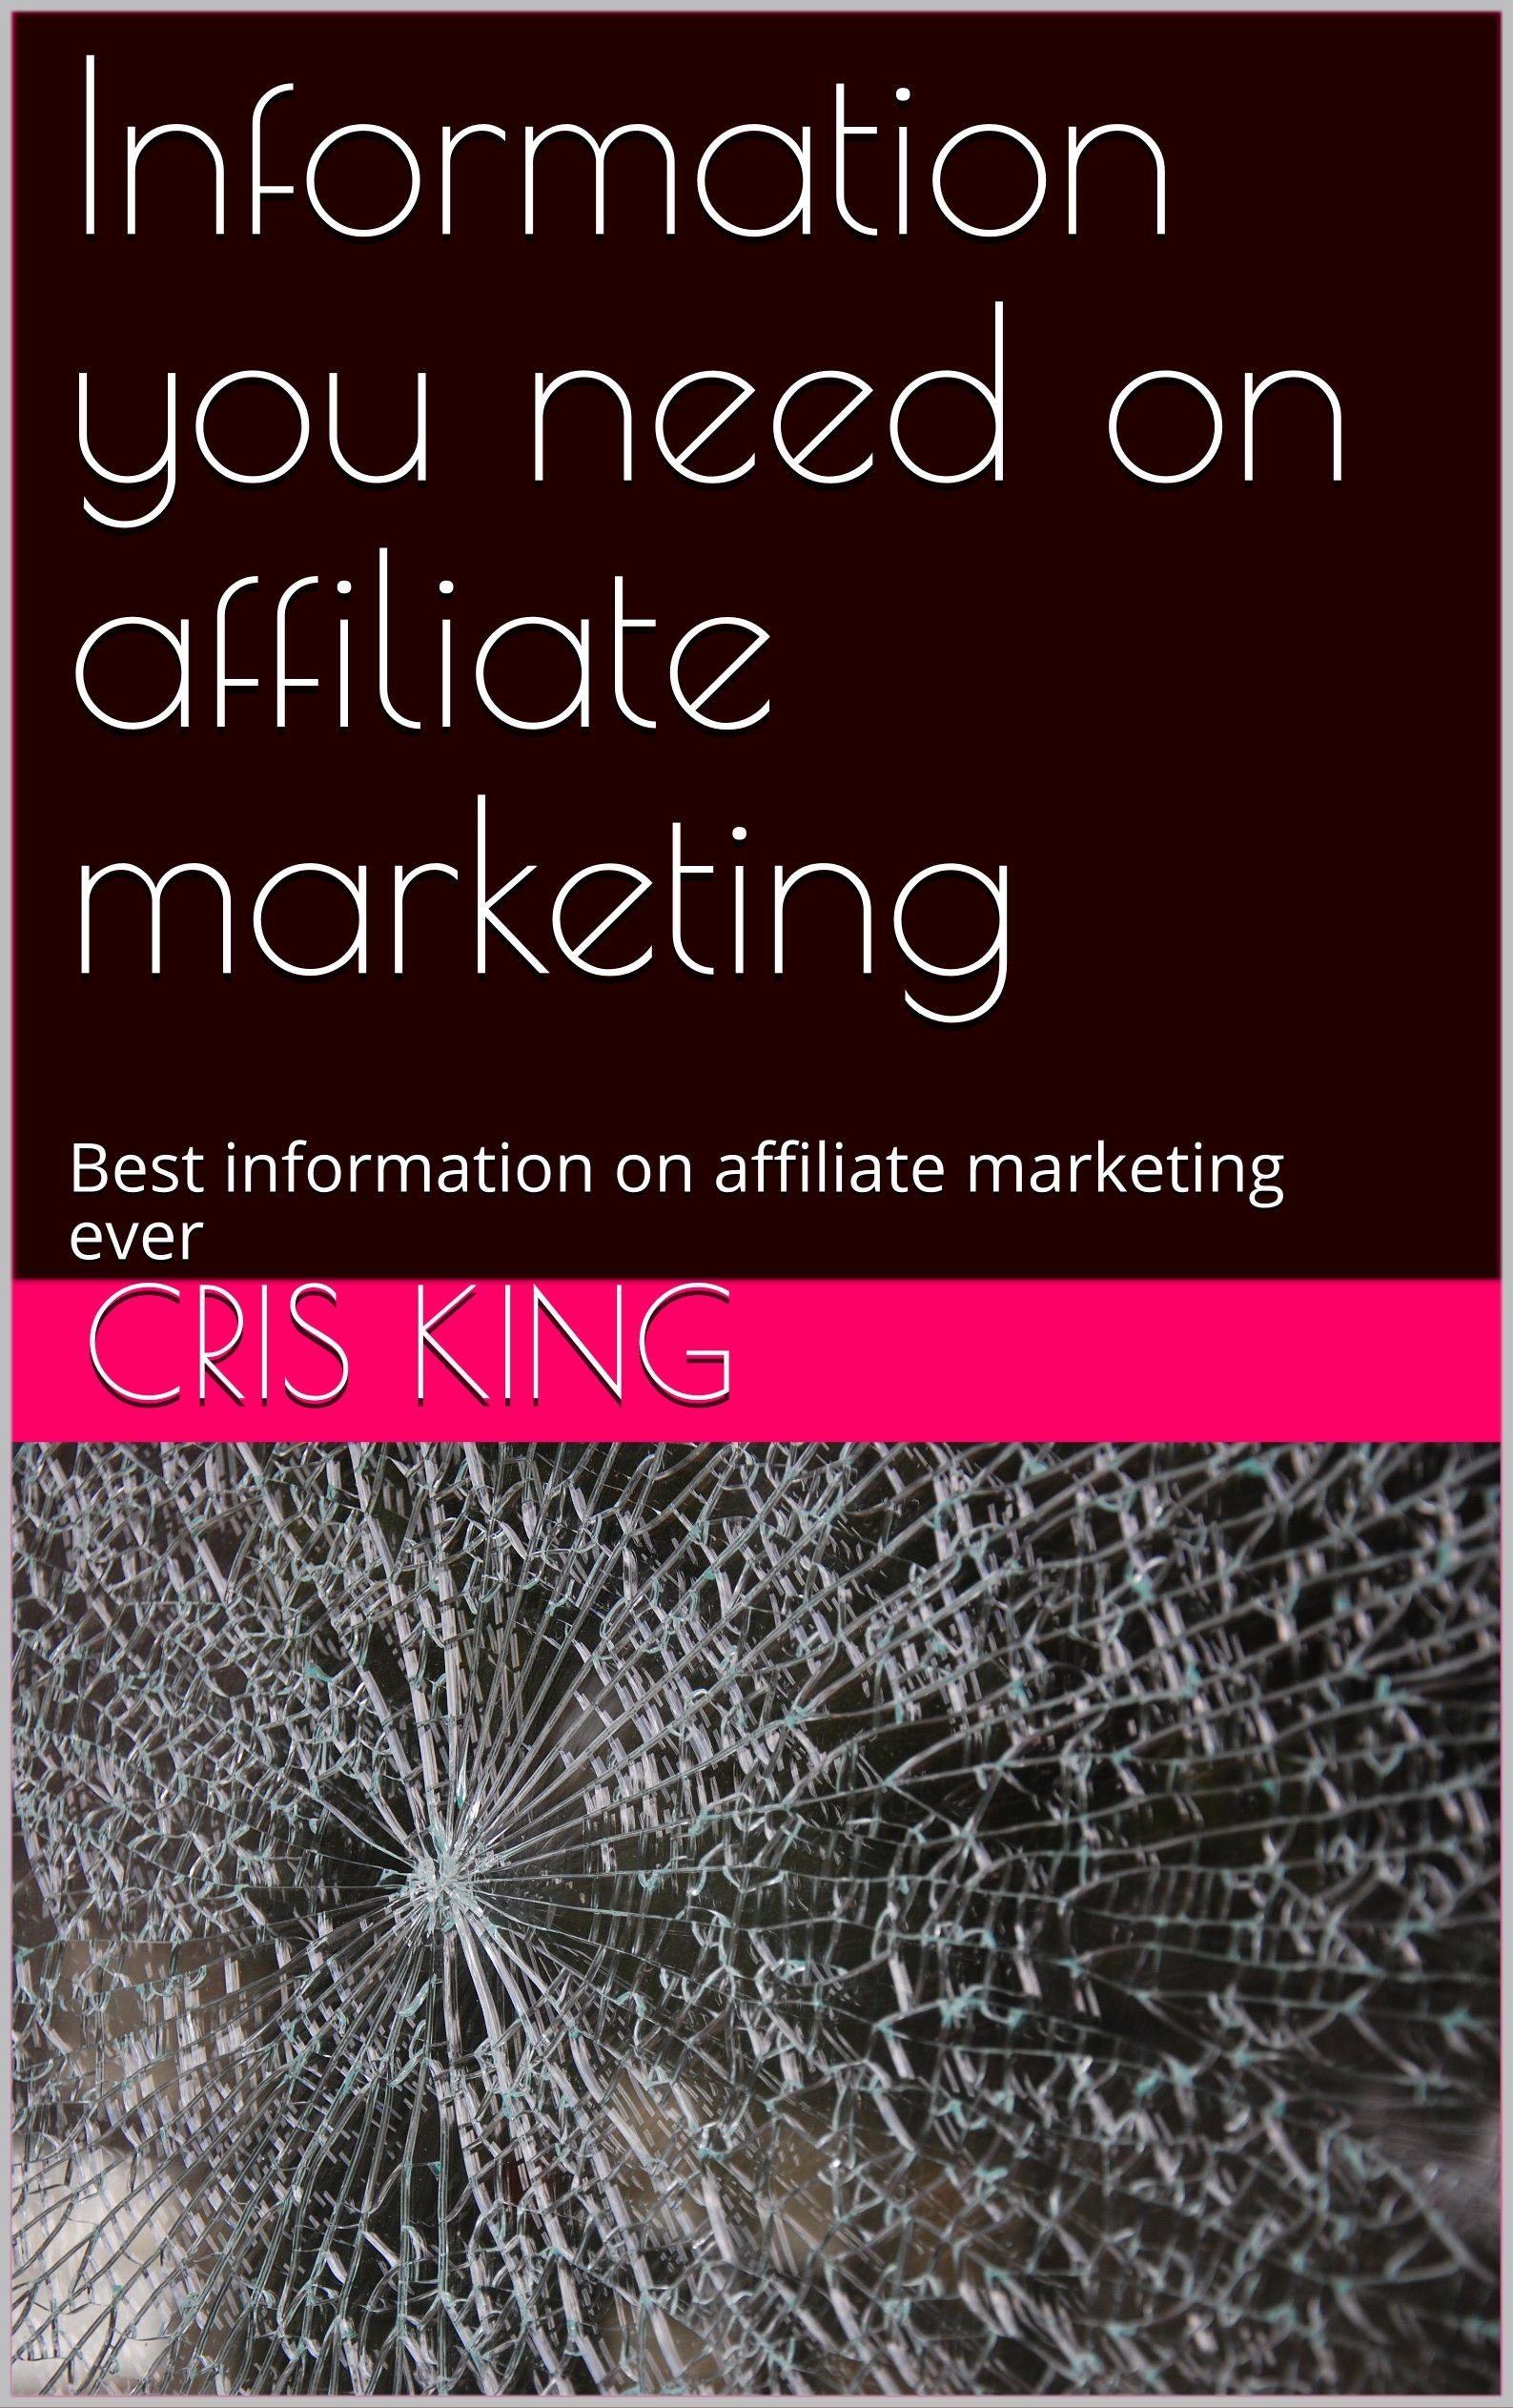 Information you need on affiliate marketing: Best information on affiliate marketing ever